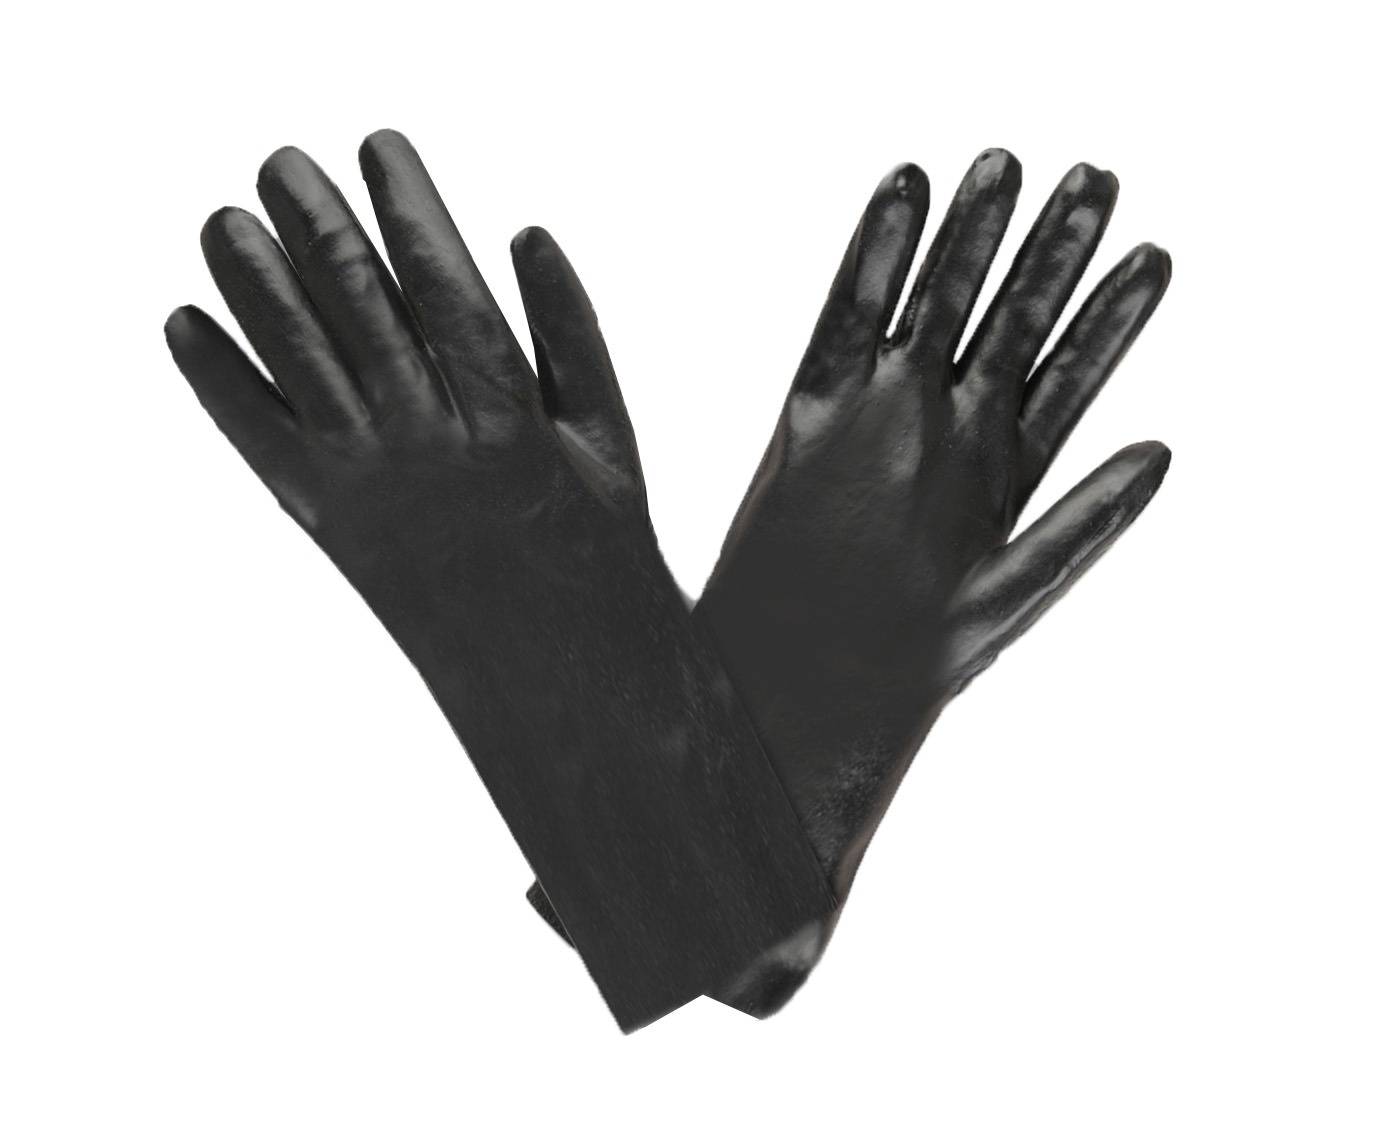 Cordova Safety Products Chemical Resistant Gloves CO5012